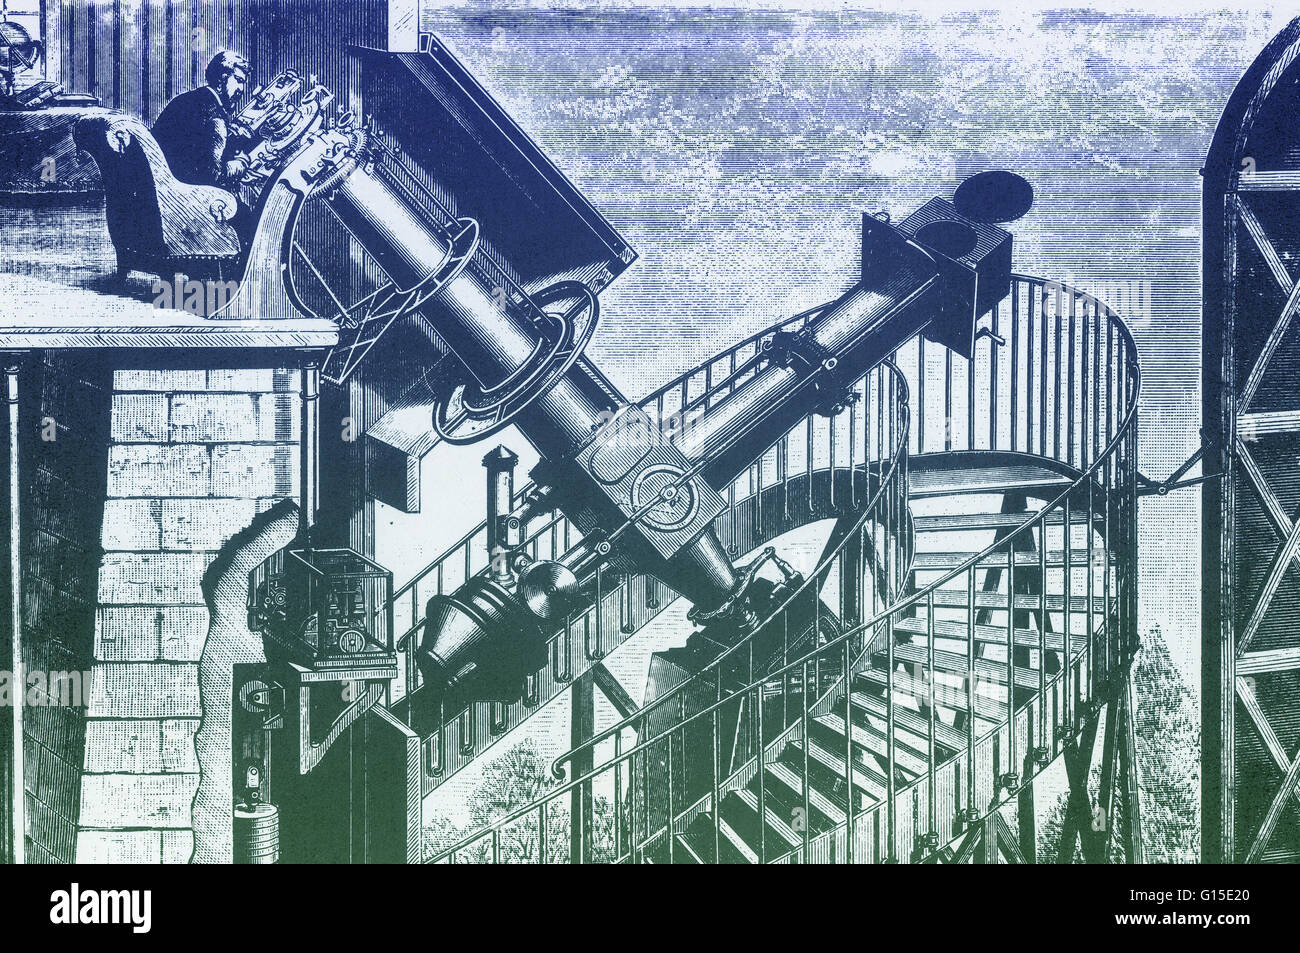 The great equatorial telescope of the Paris observatory. 1883. - Stock Image